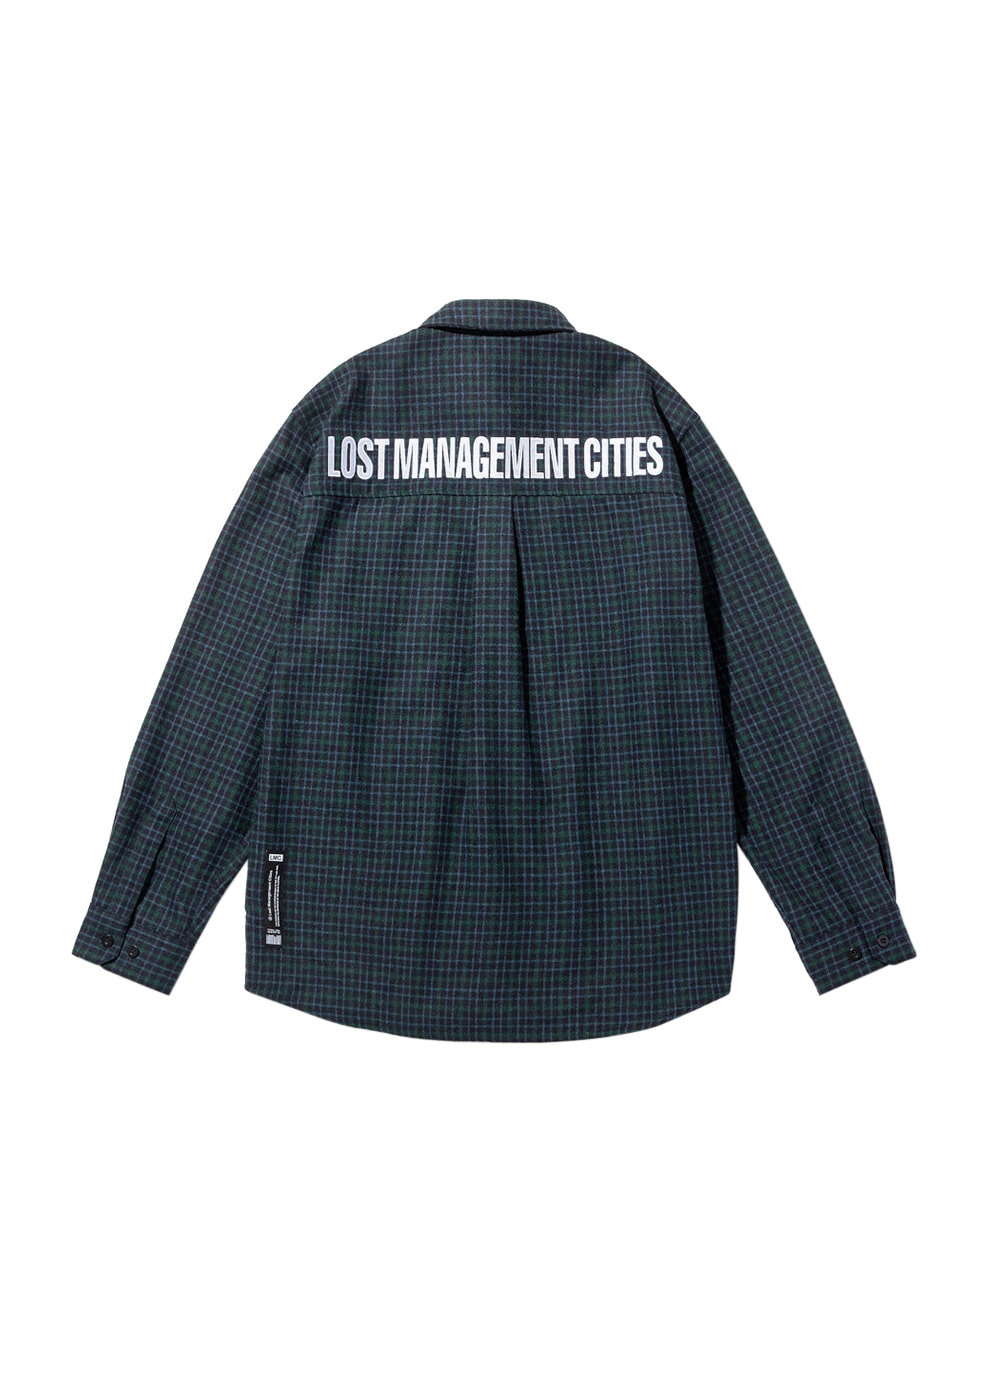 LMC FN PLAID SHIRT blue